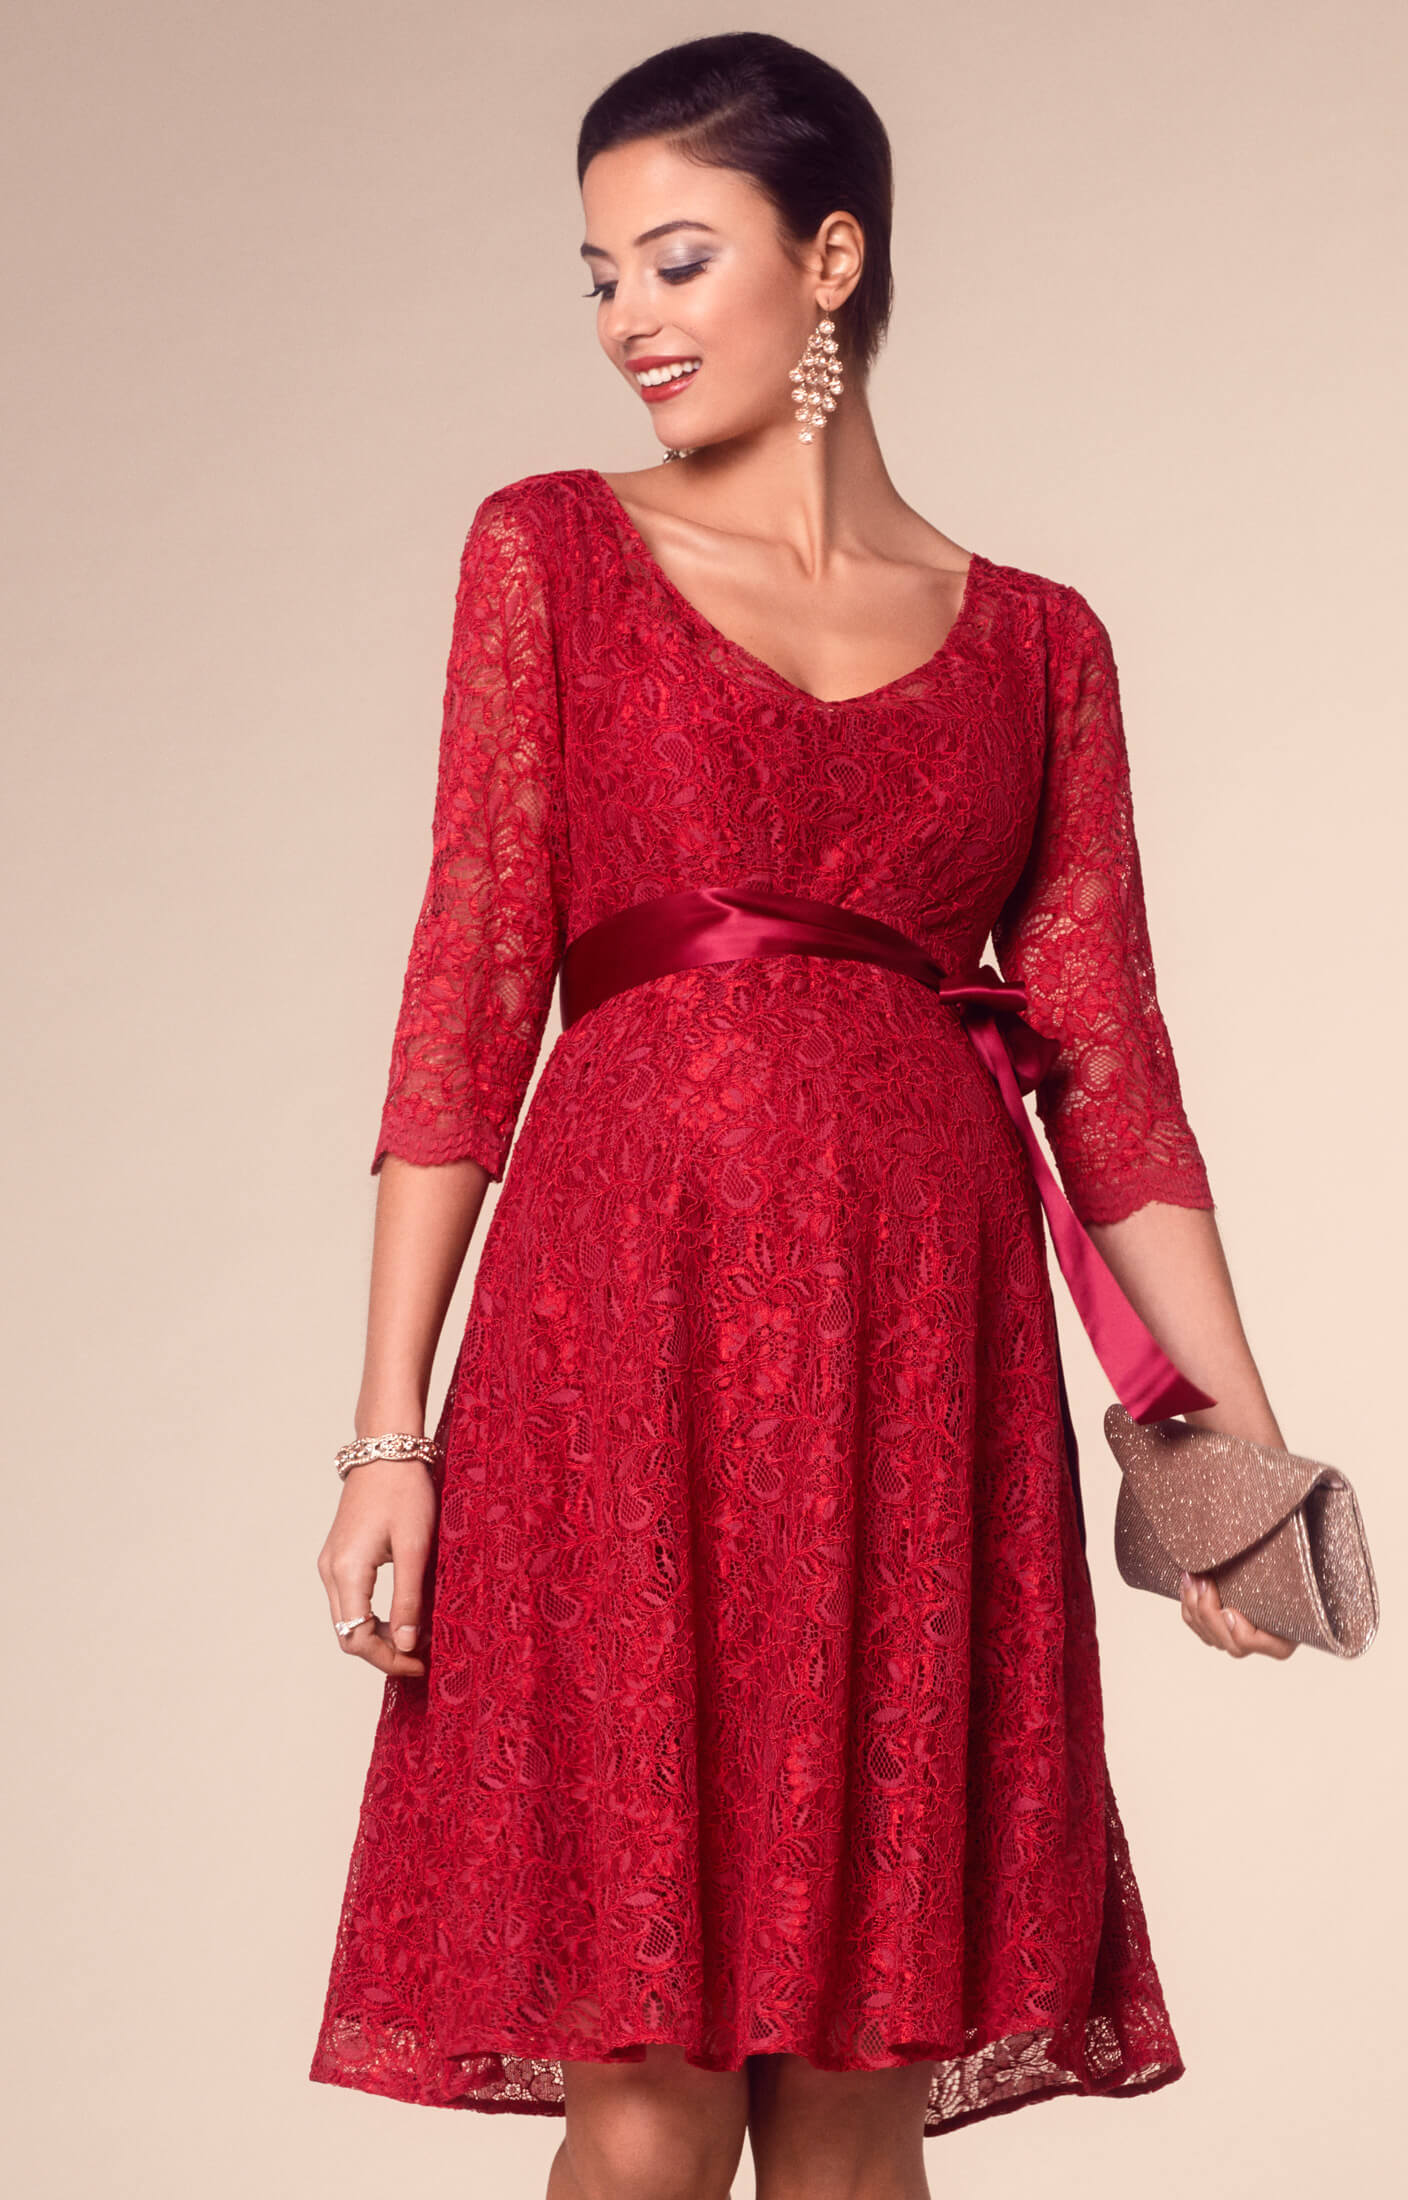 freya maternity dress scarlet maternity wedding dresses